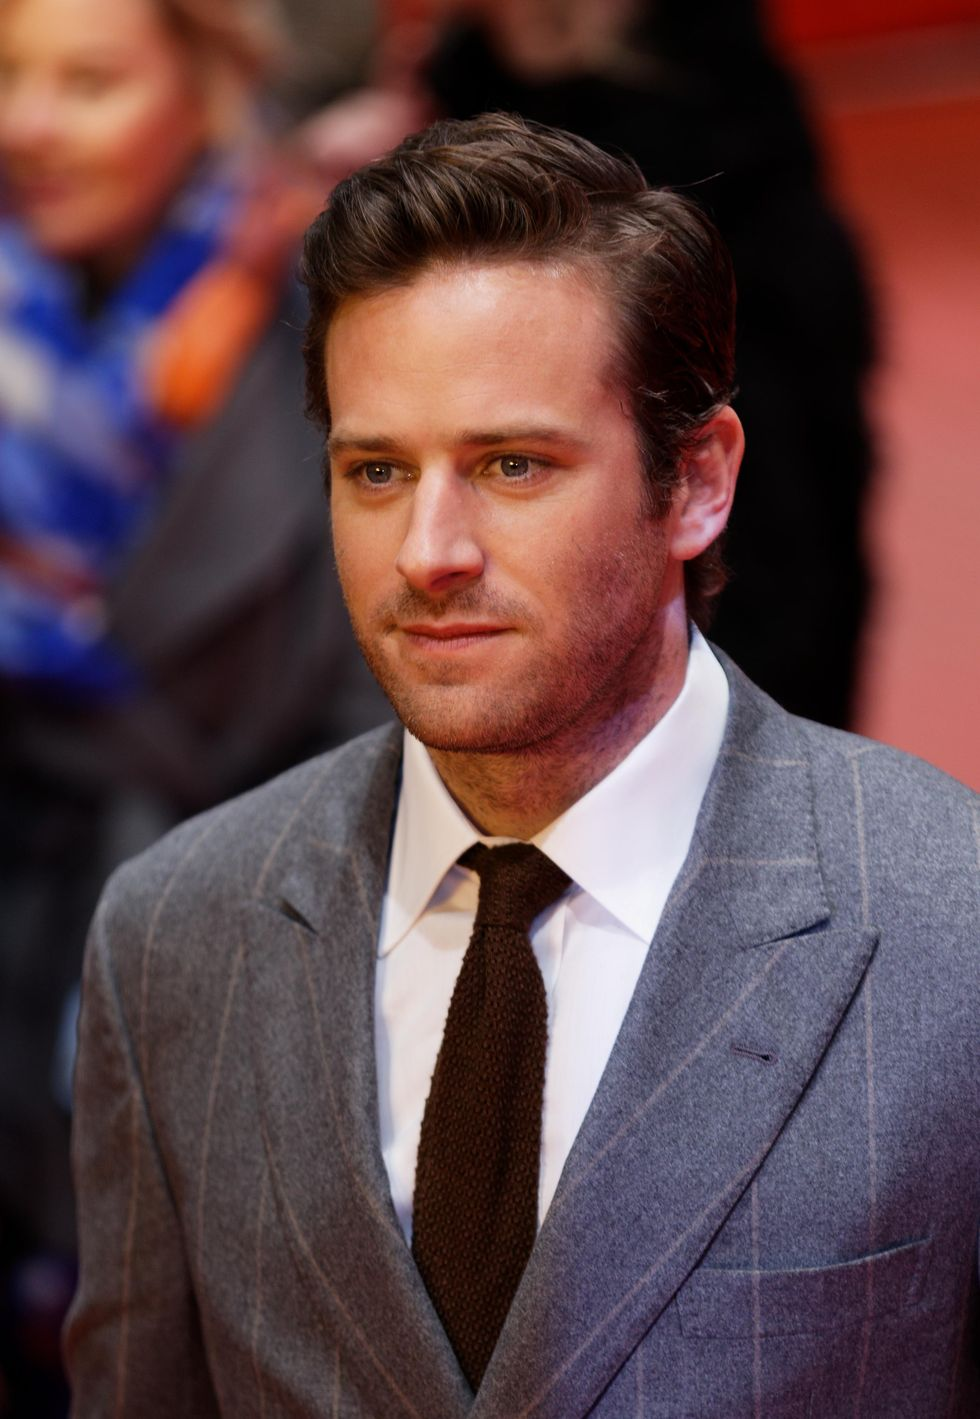 Everything You Need To Know About What's Going Down With Armie Hammer